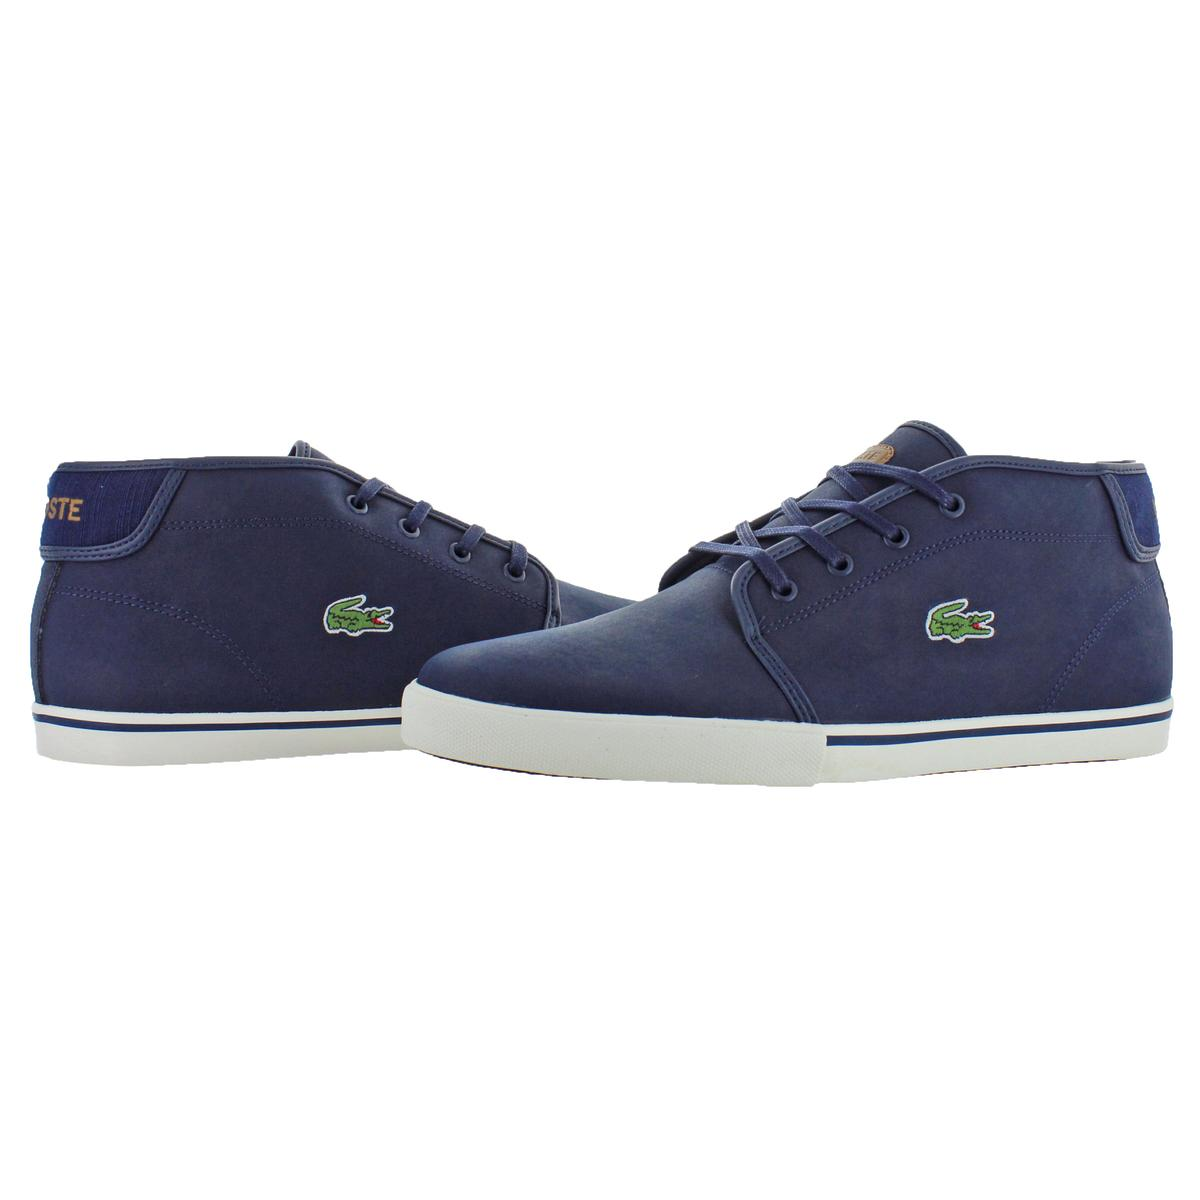 94d3d3197 Lacoste Men s Ampthill Leather Chukka Mid-Top Fashion Sneakers Shoes ...